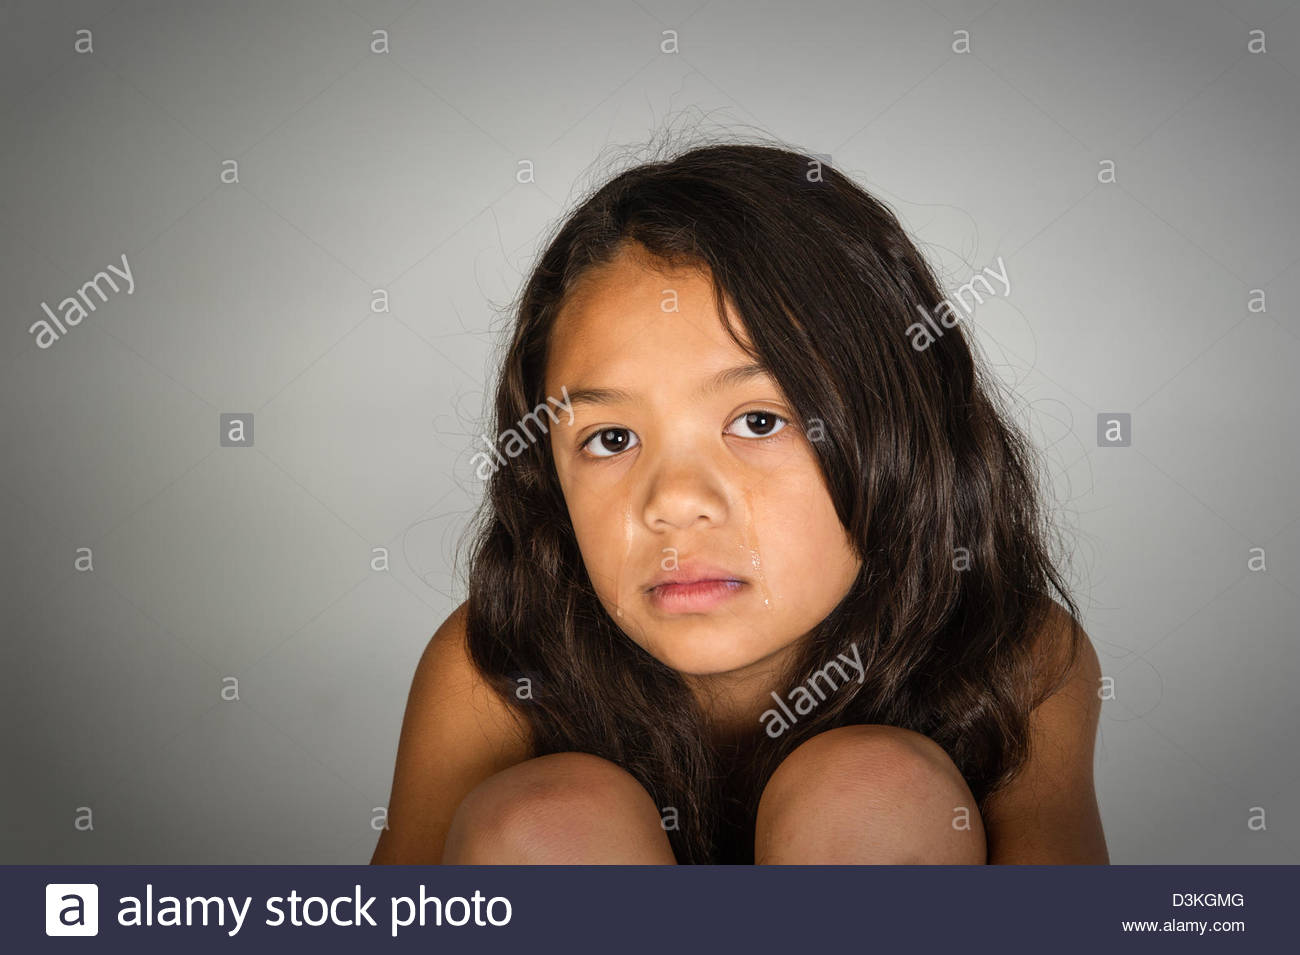 young girl with tears running down her face. - Stock Image